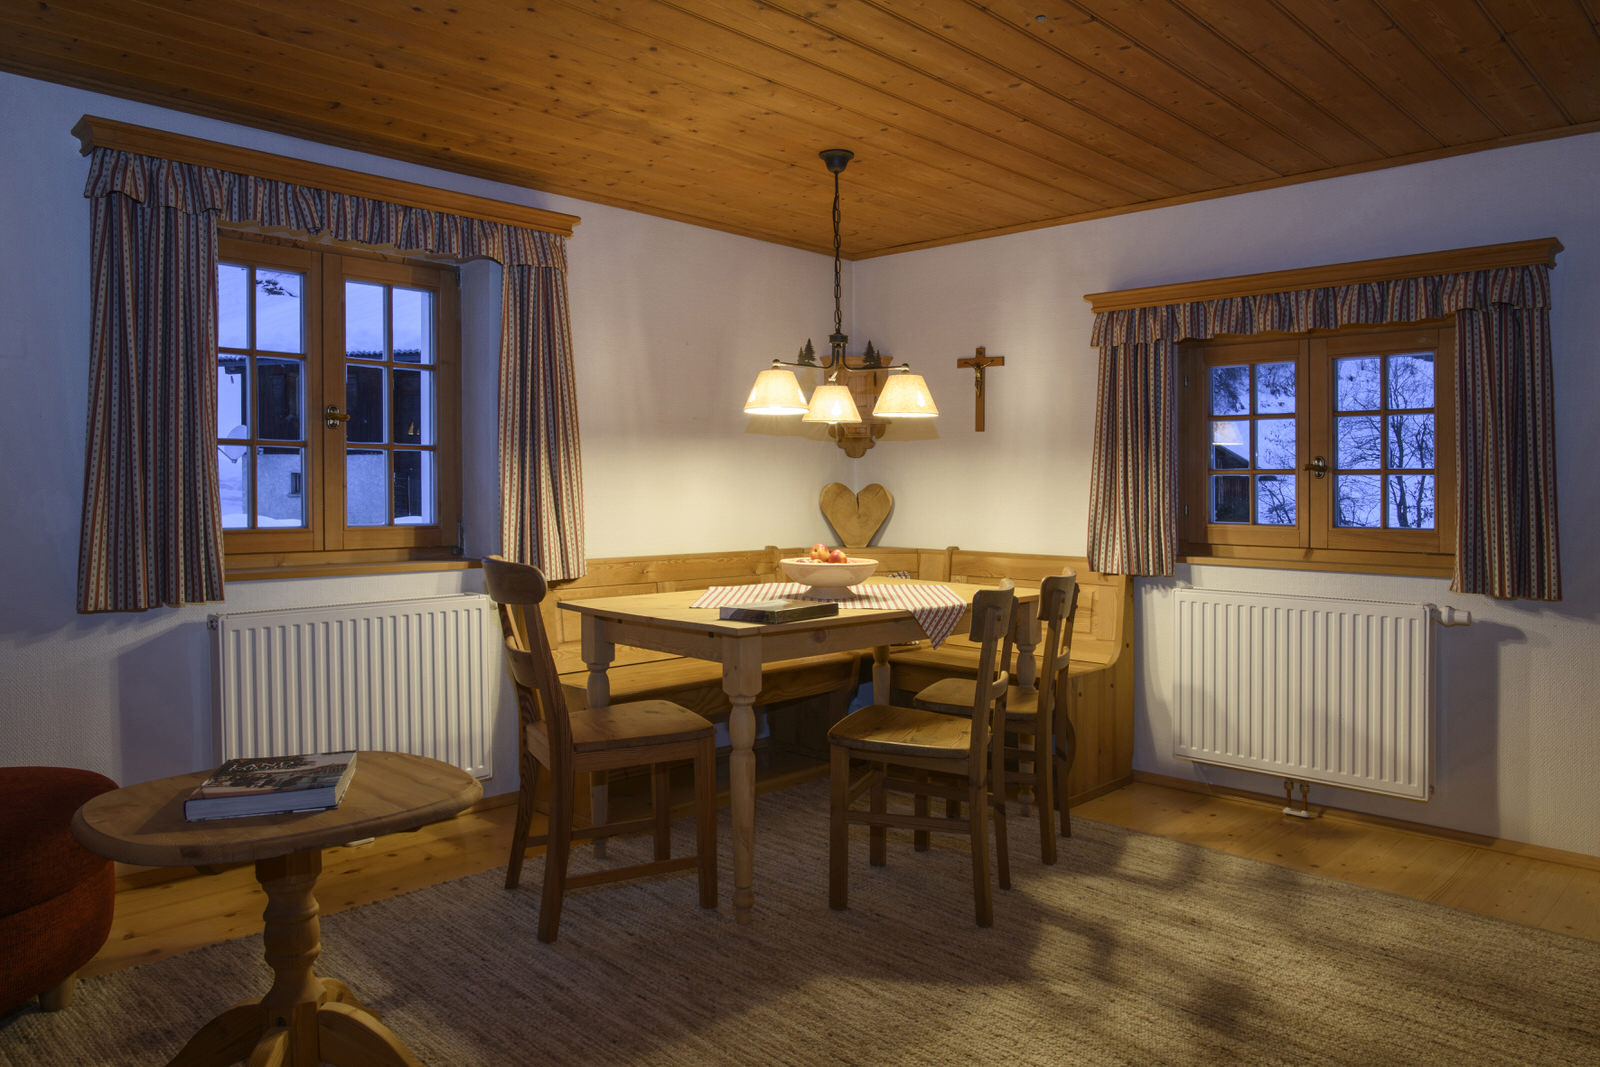 Bärenwald country lodge in the Montafon - living